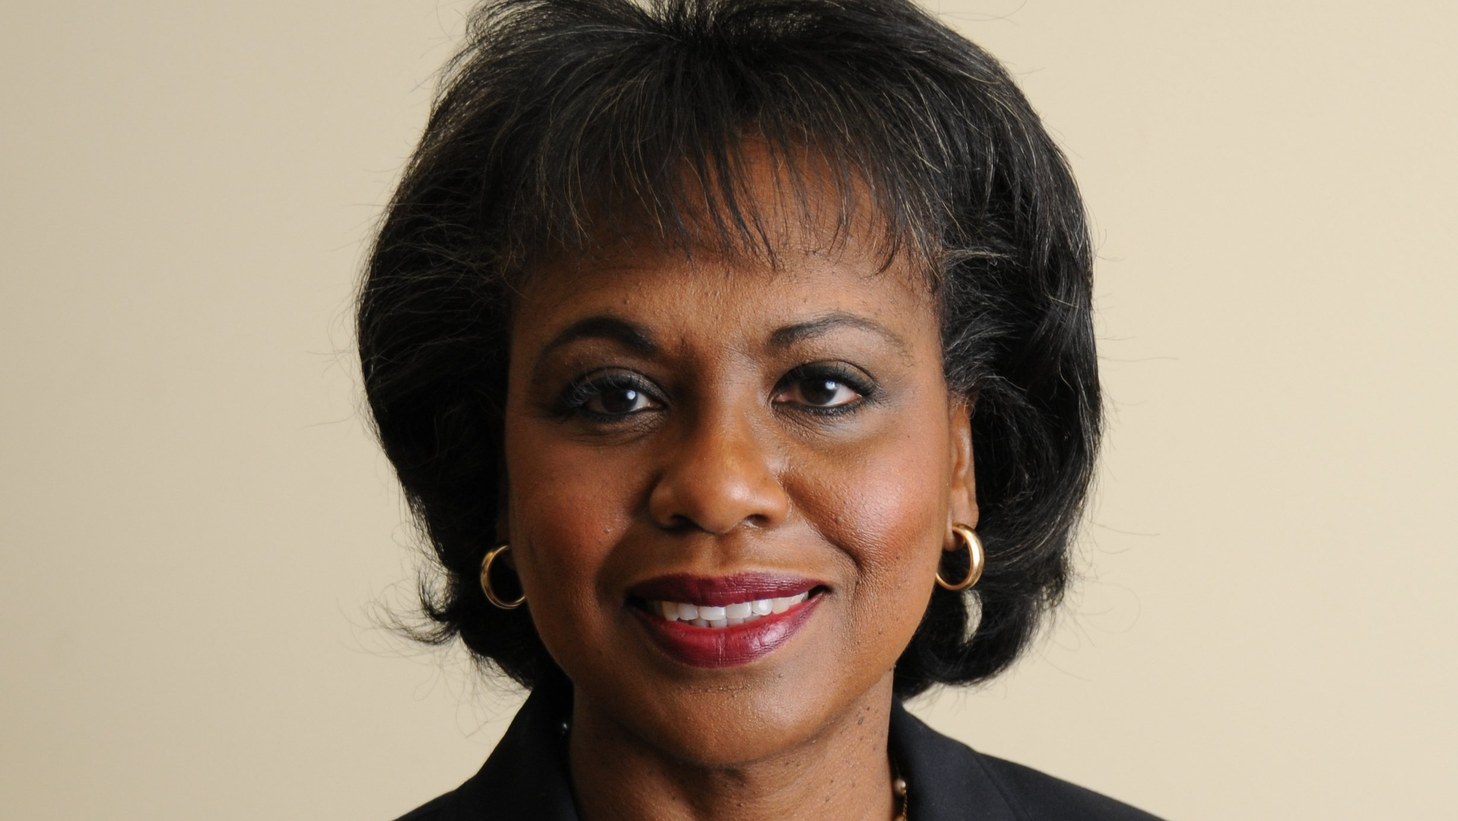 Anita HIll chairs the Hollywood Commission, which surveyed almost 10,000 workers on the issues of harassment and accountability in Hollywood.